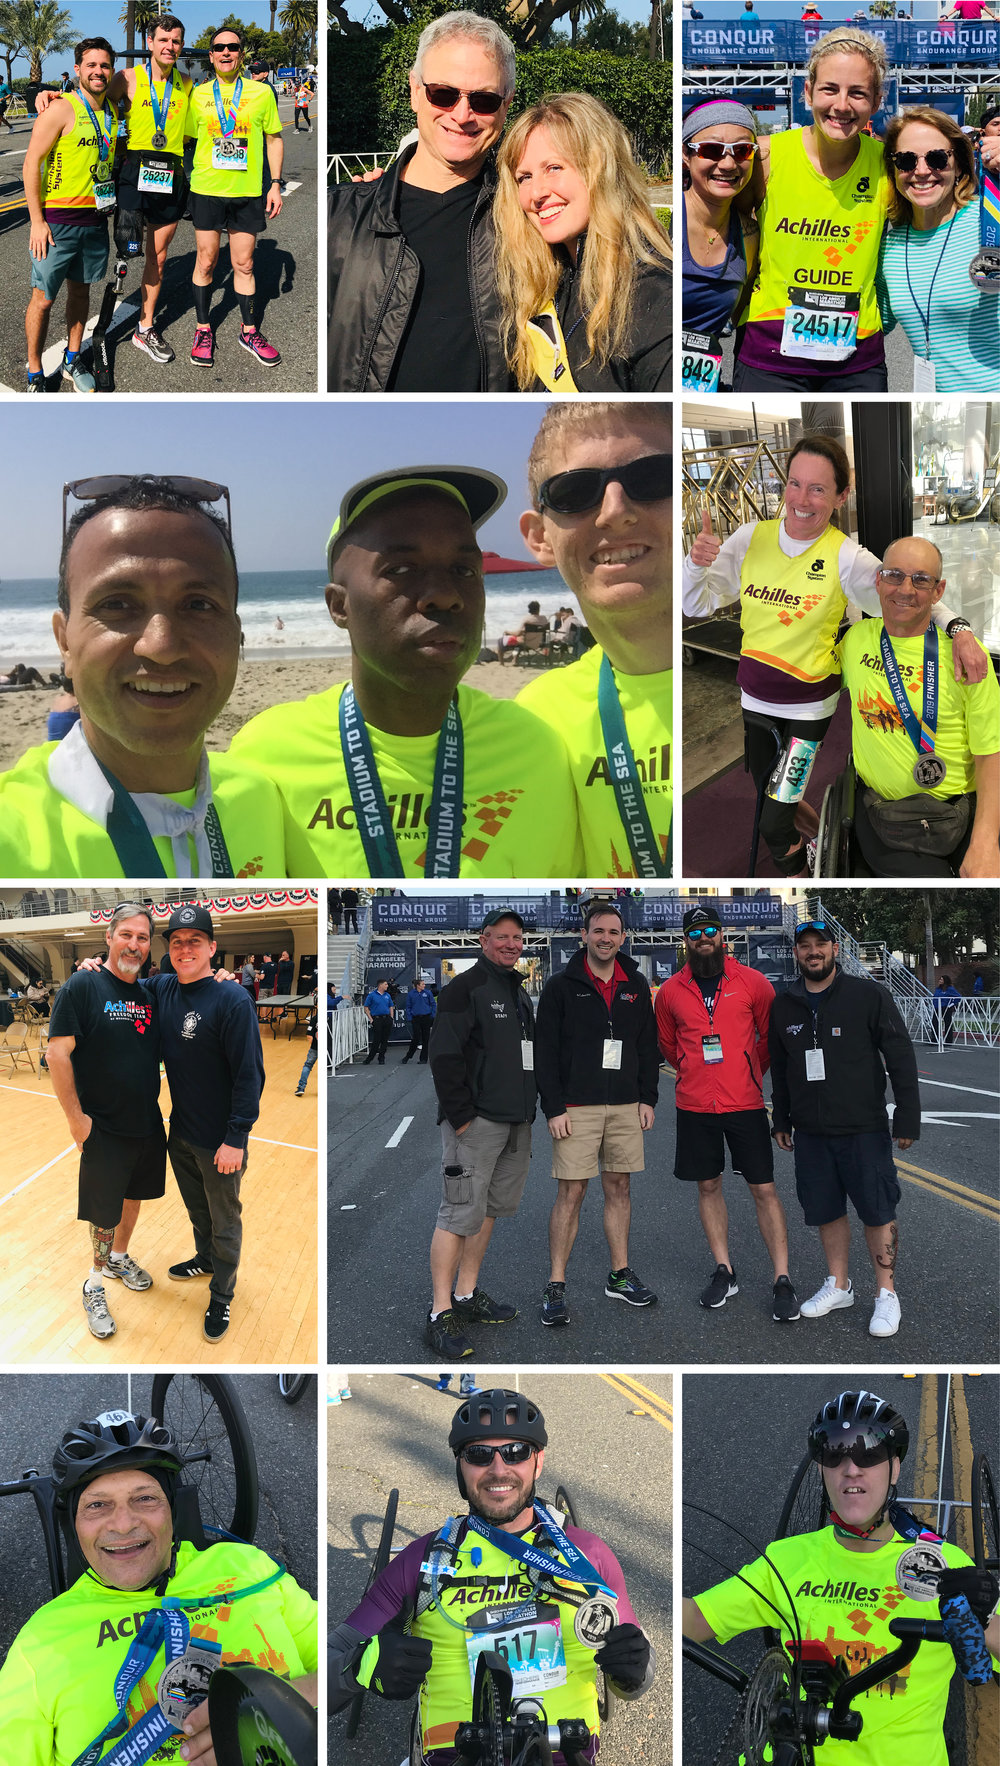 2019-04 LA Marathon Collage - pt2a.jpg